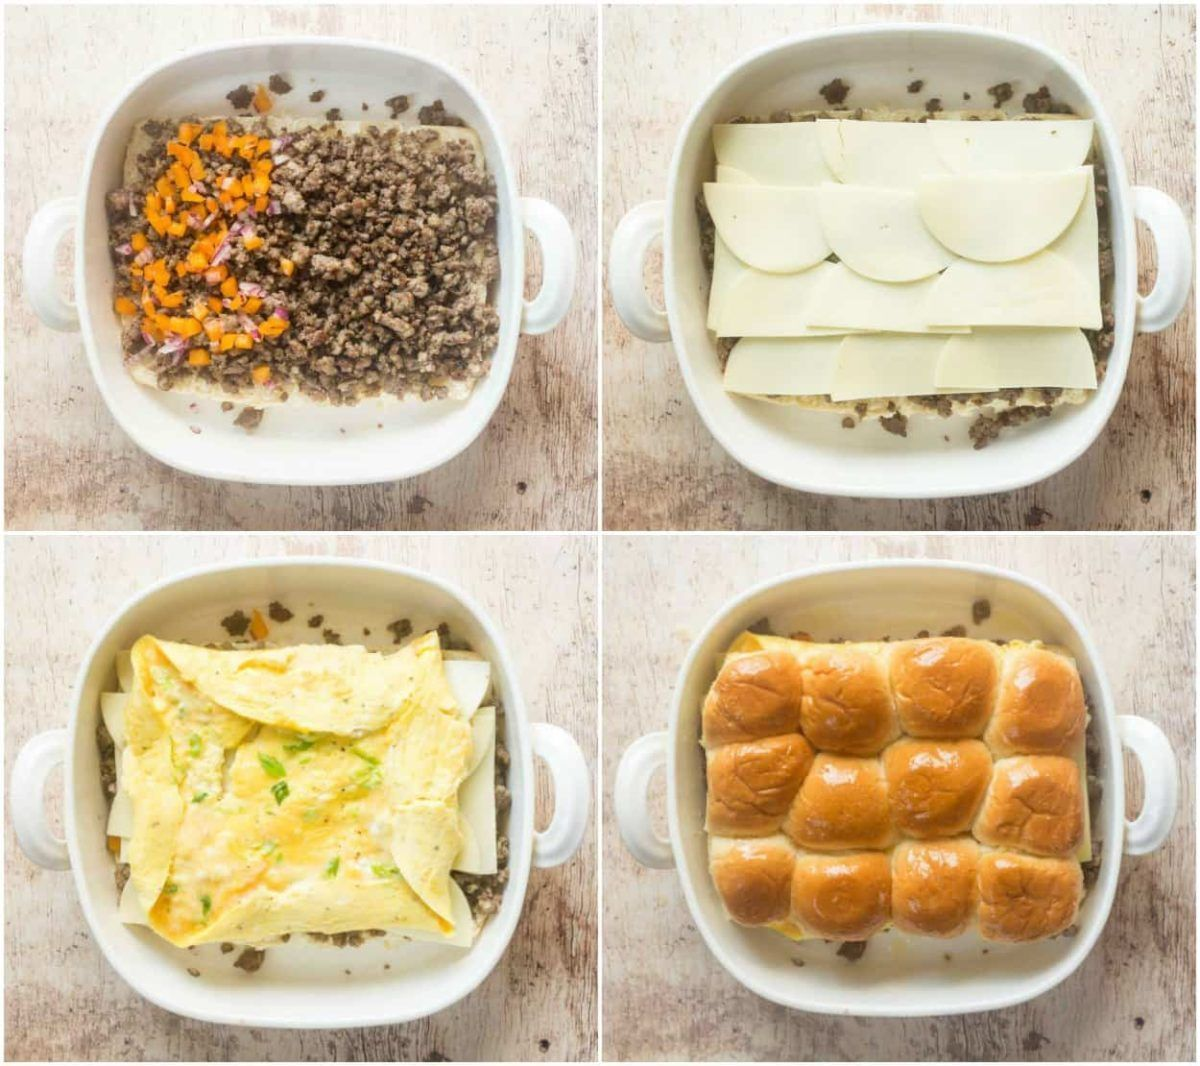 Recipe for how to make simple Hawaiian roll sliders for breakfast with sausage, cheese and eggs. #breakfastslidershawaiianrolls Recipe for how to make simple Hawaiian roll sliders for breakfast with sausage, cheese and eggs. #breakfastslidershawaiianrolls Recipe for how to make simple Hawaiian roll sliders for breakfast with sausage, cheese and eggs. #breakfastslidershawaiianrolls Recipe for how to make simple Hawaiian roll sliders for breakfast with sausage, cheese and eggs. #breakfastslidershawaiianrolls